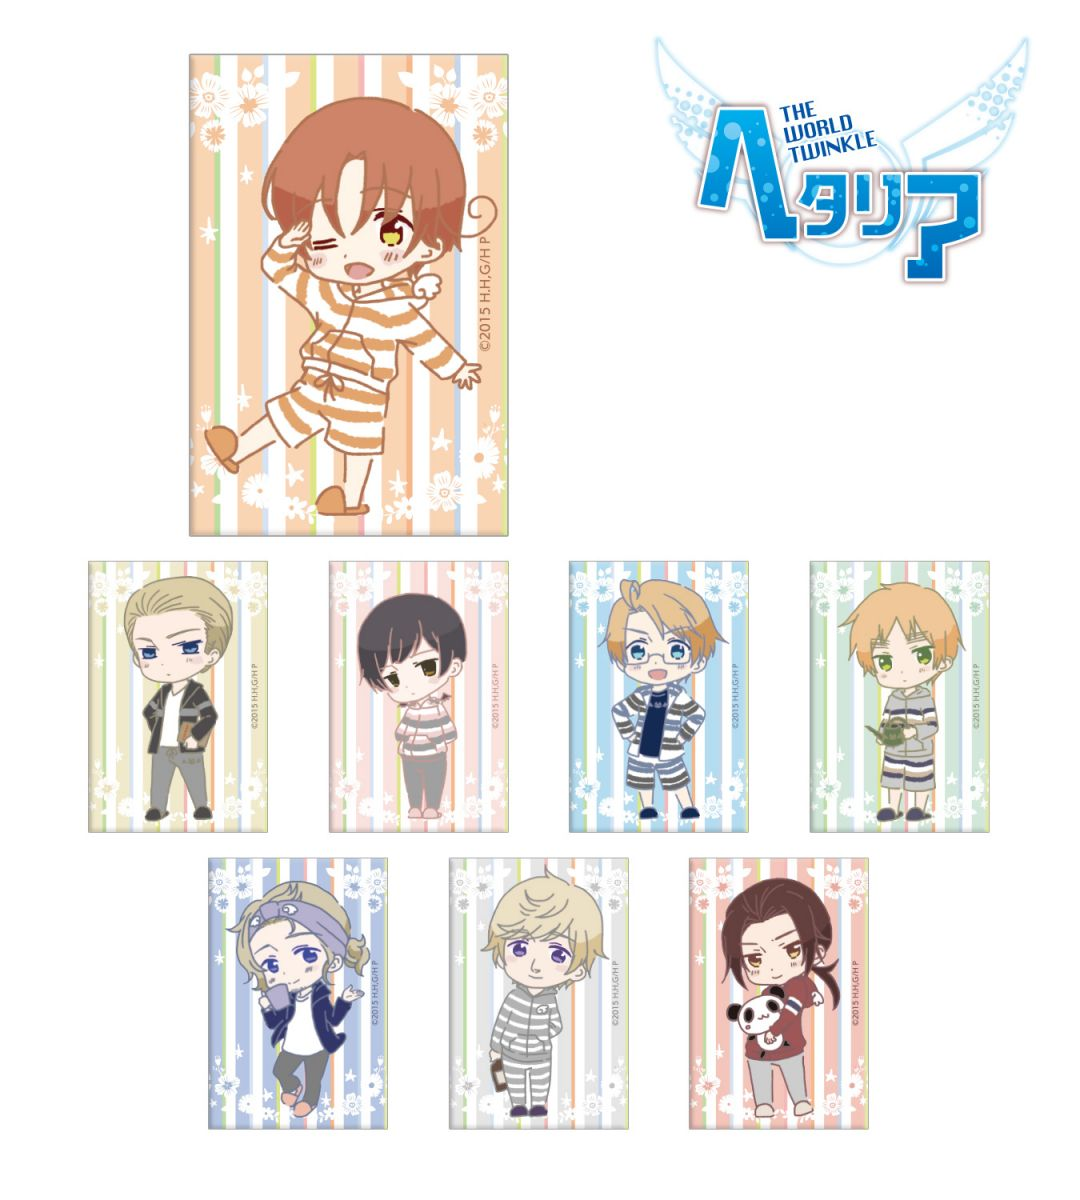 Magnet | Anime Hetalia - The World Twinkle | Anime Merchandise Monday (5-12 August) by MANGA.TOKYO ©2015 日丸屋秀和・幻冬舎コミックス/ヘタリア製作委員会